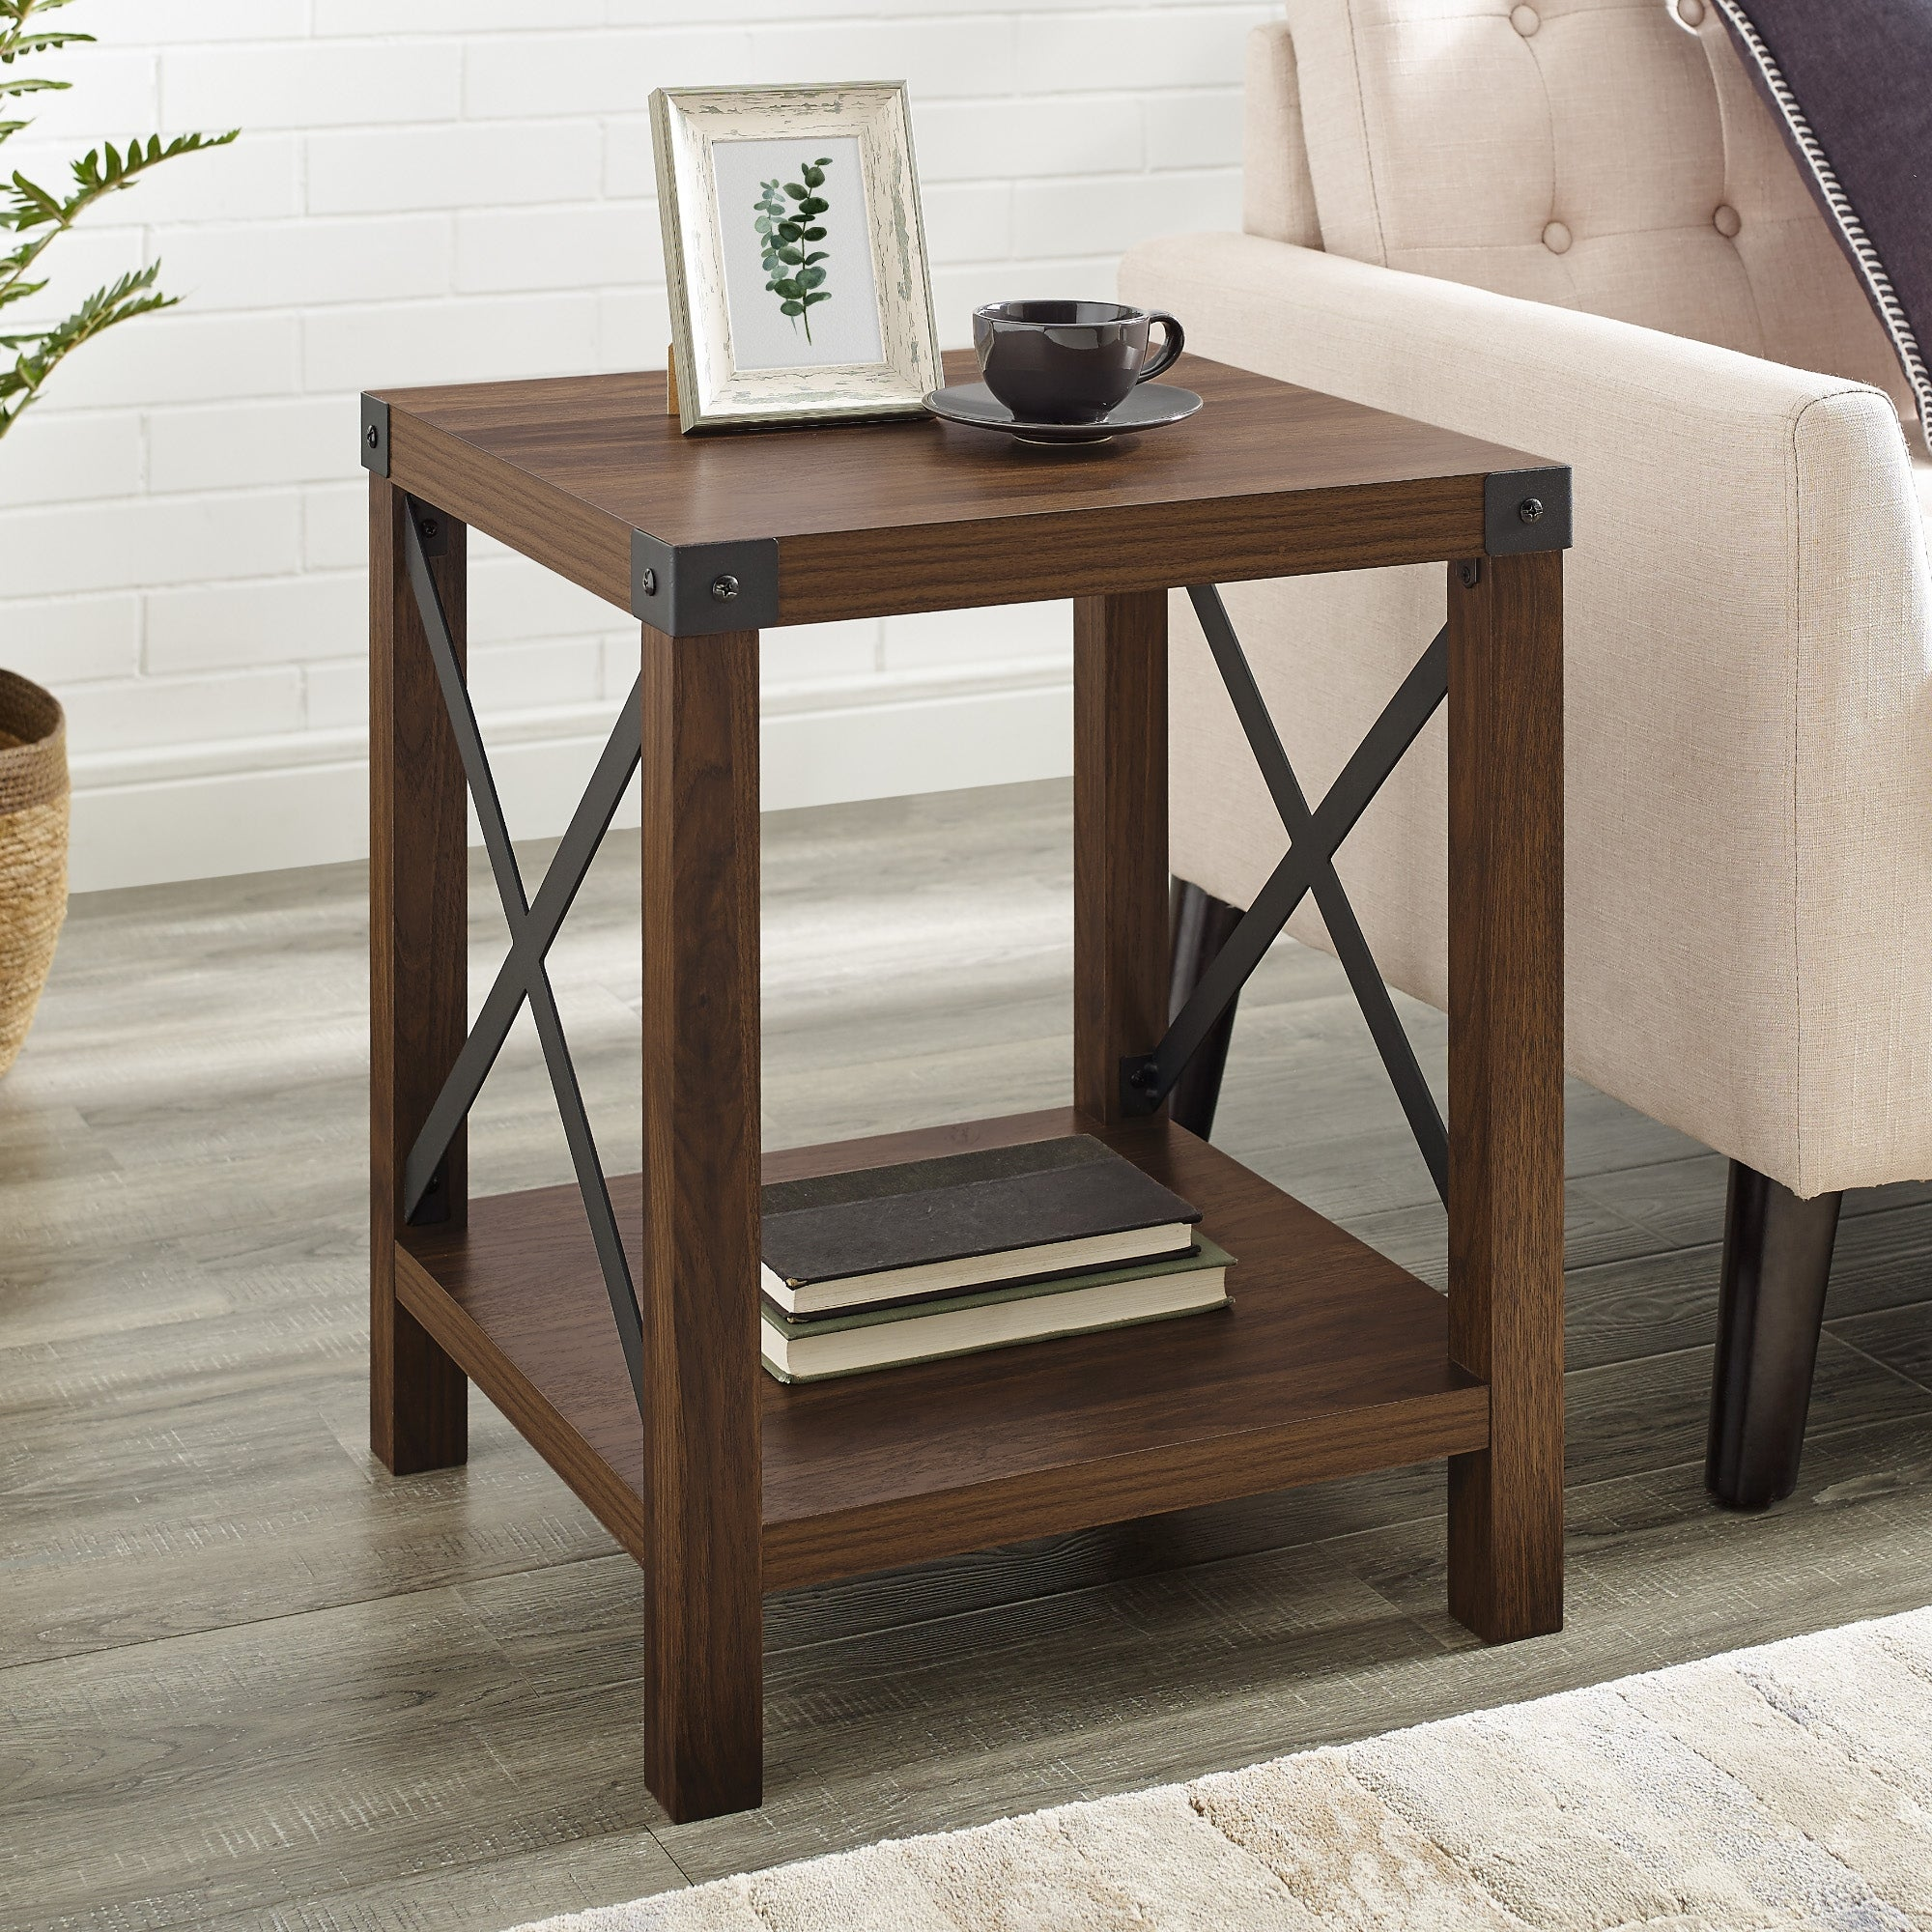 The Gray Barn 18 Inch Kujawa X Accent Side Table On Sale Overstock 21666058